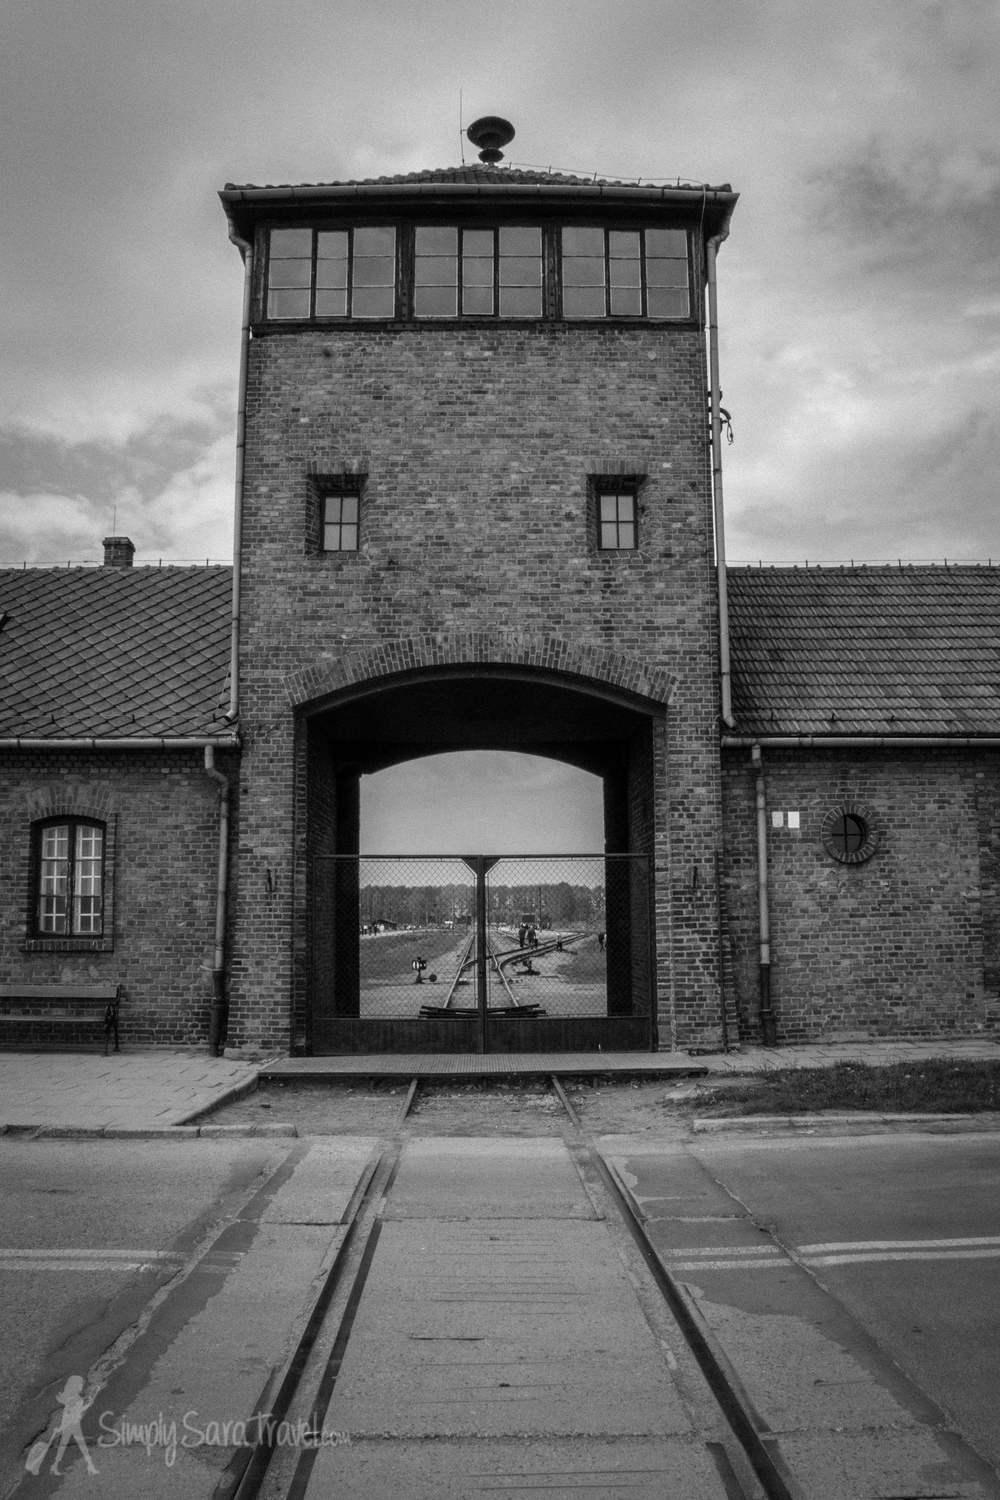 The main guard tower of Auschwitz II-Birkenau